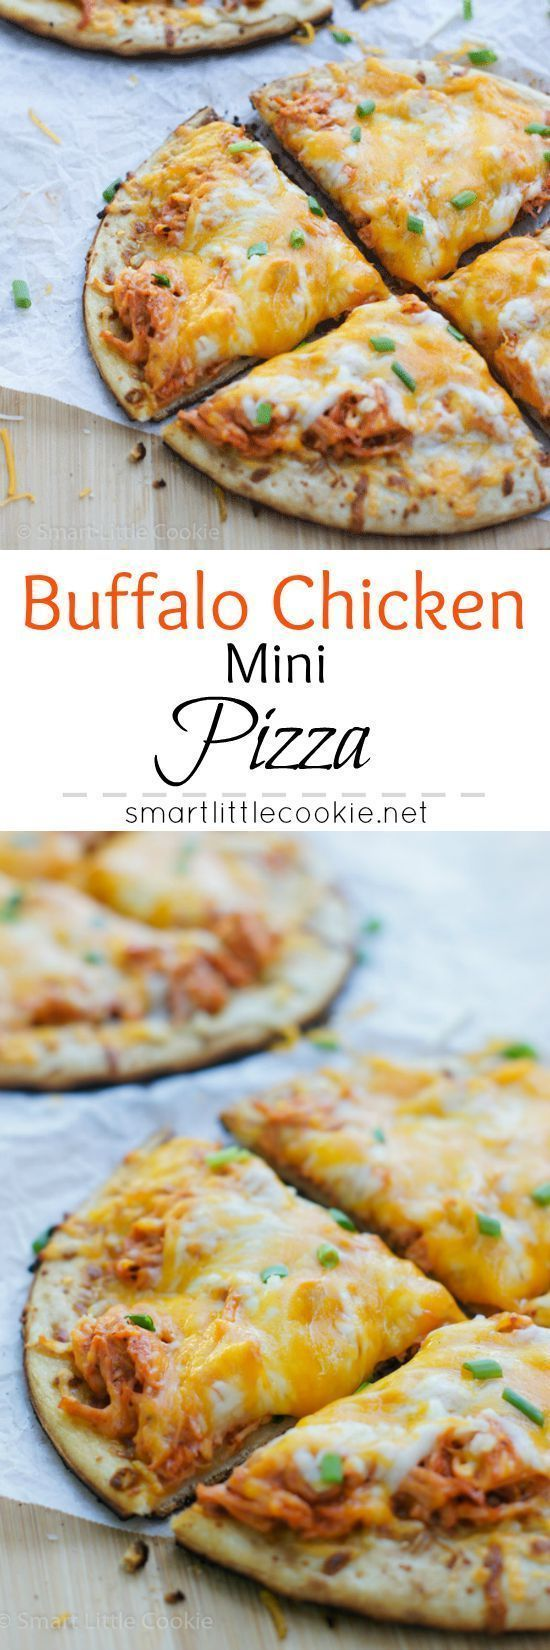 Cheesy, crispy, spicy and full of flavor! The perfect Game Day Buffalo Chicken Mini Pizza. @elyucateco #KingofFlavor #ad | smartlittlecookie.net